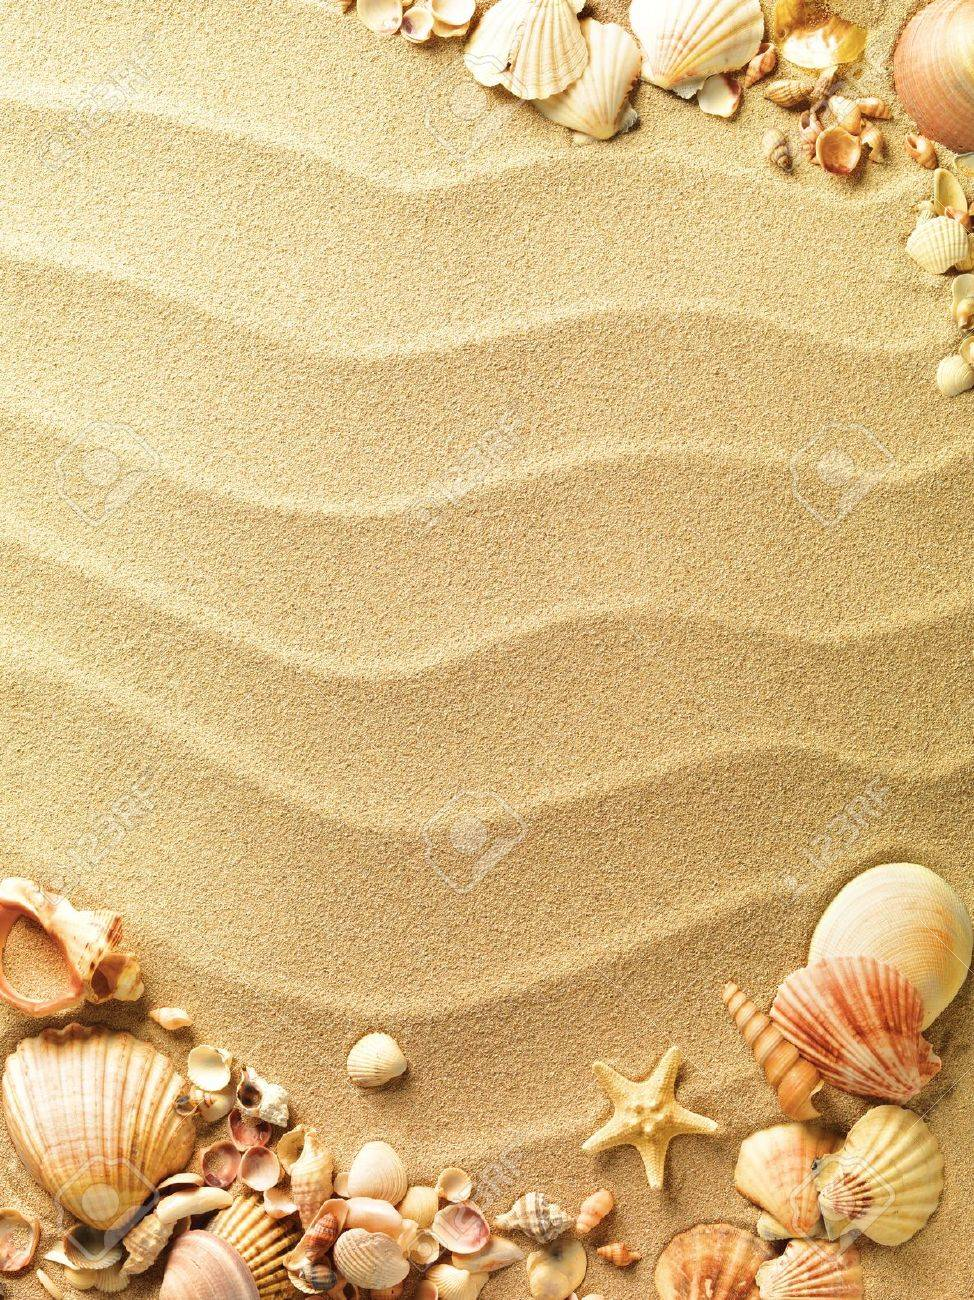 sea shells with sand as background Stock Photo - 9822520